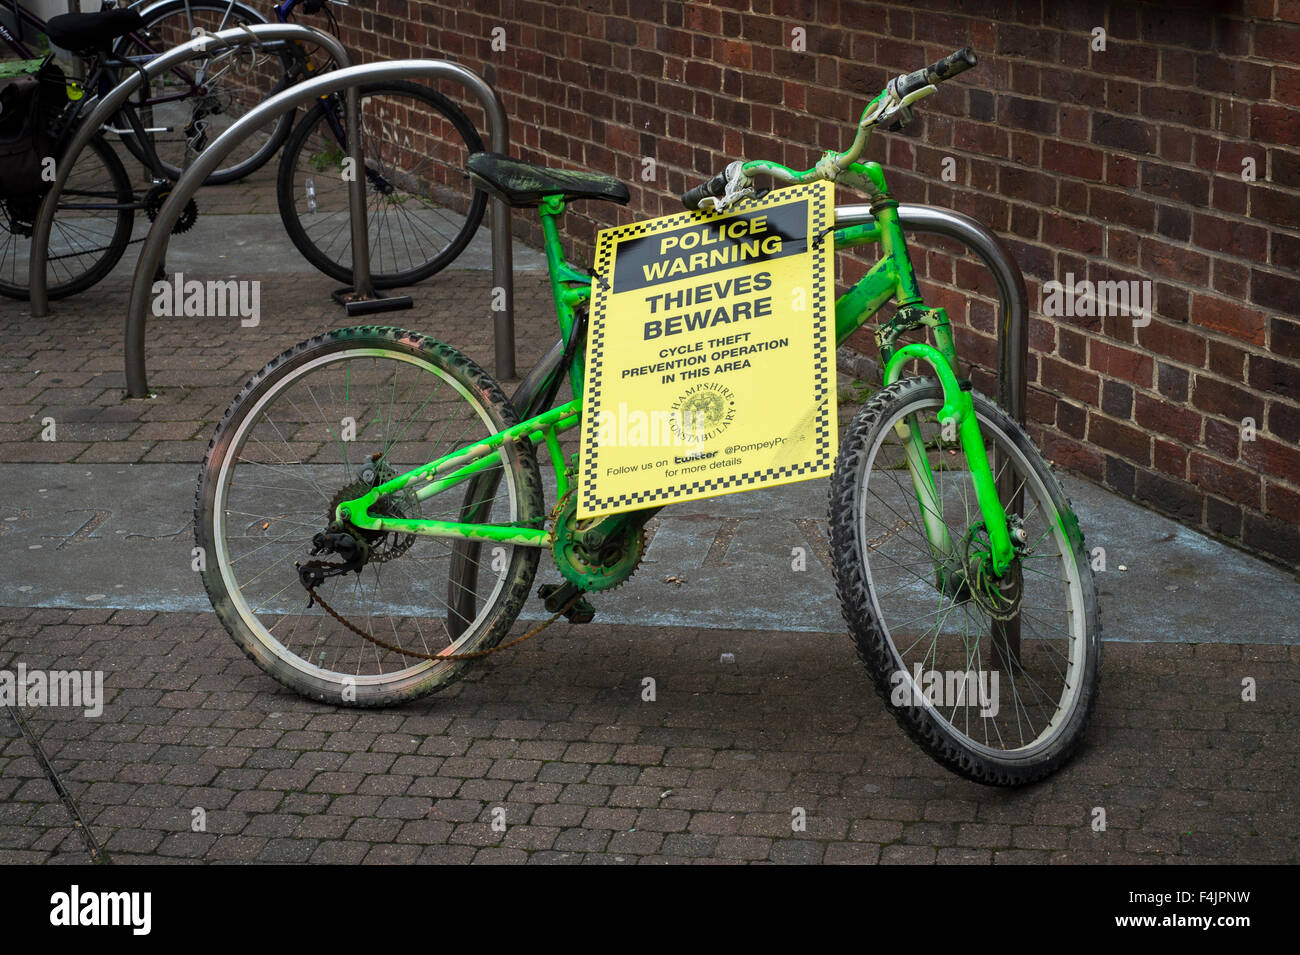 Bicycle with a Police Warning Thieves Beware sign attached. - Stock Image